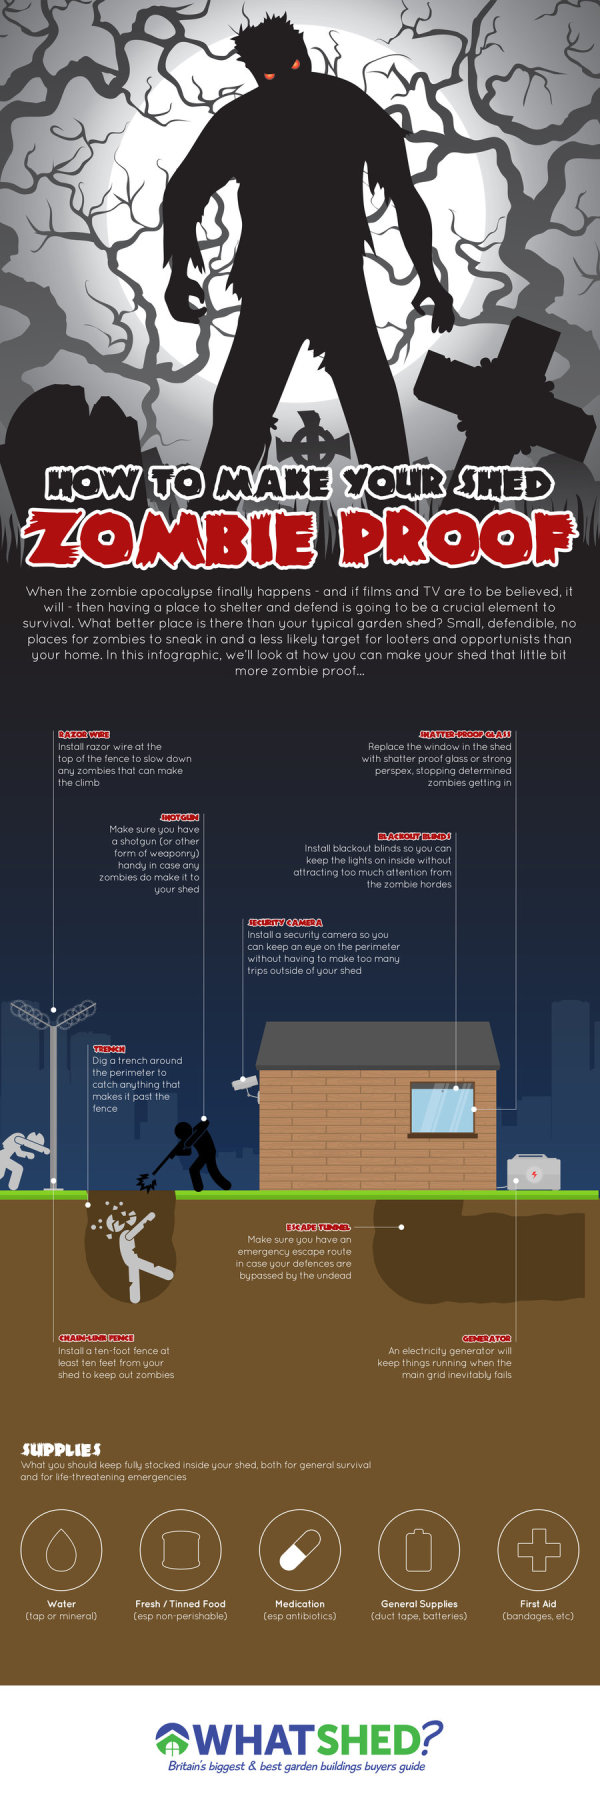 How to Make Your Shed Zombie Proof infographic